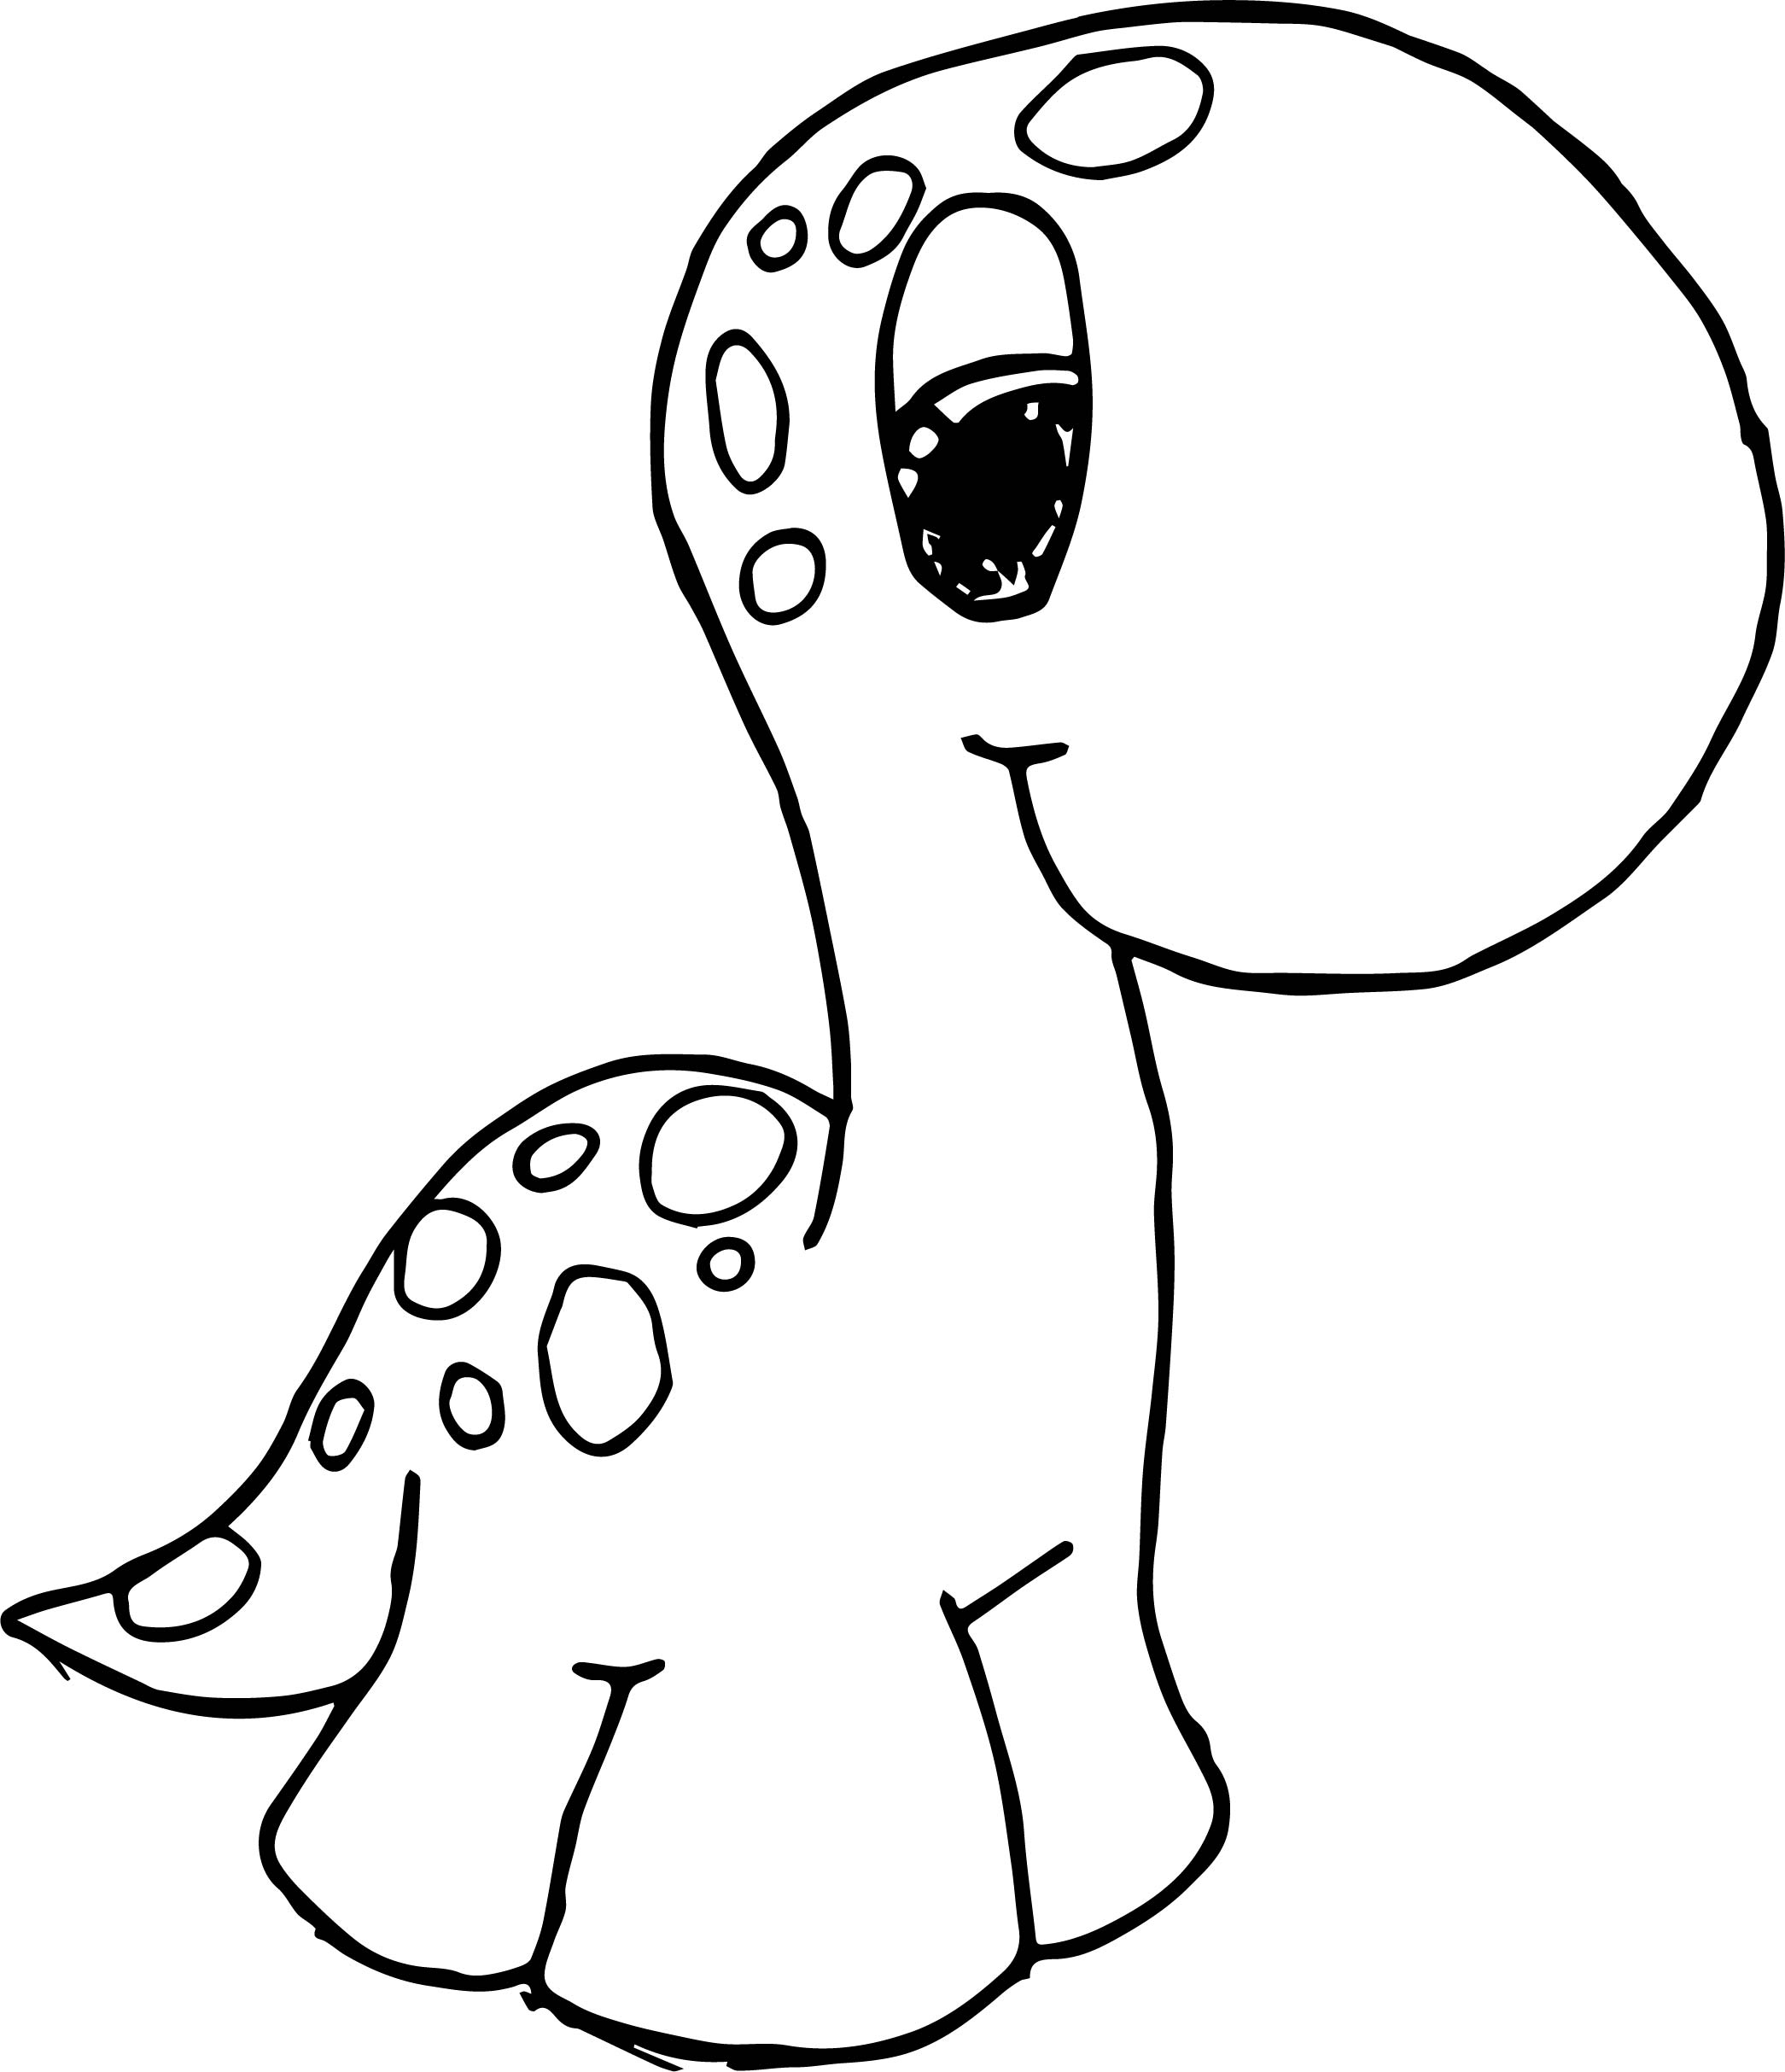 Cute Dinosaur Coloring Pages For Kids Az Sketch Coloring Page